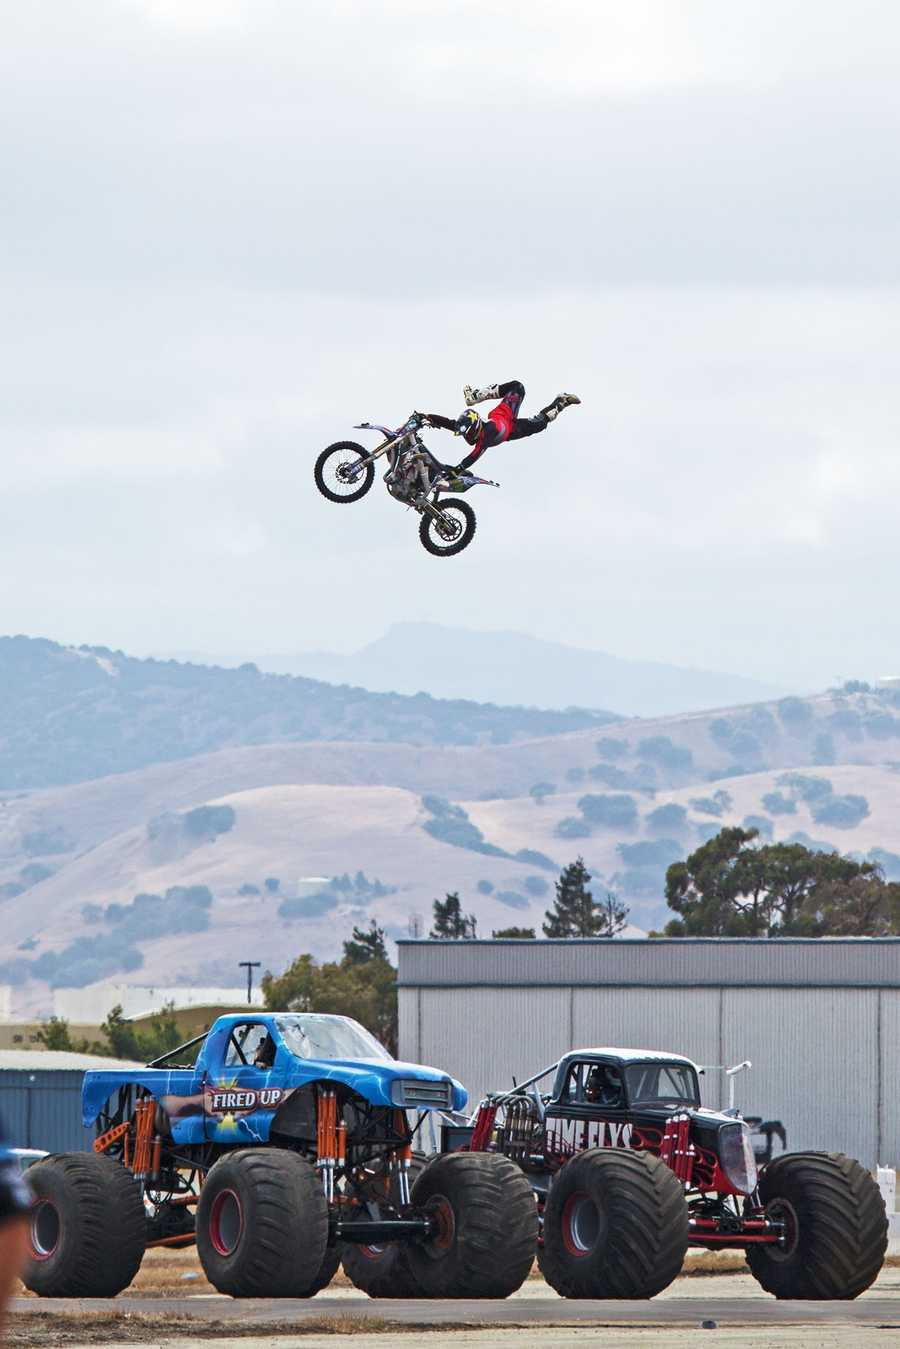 A daredevil motorcyclist catches some air.